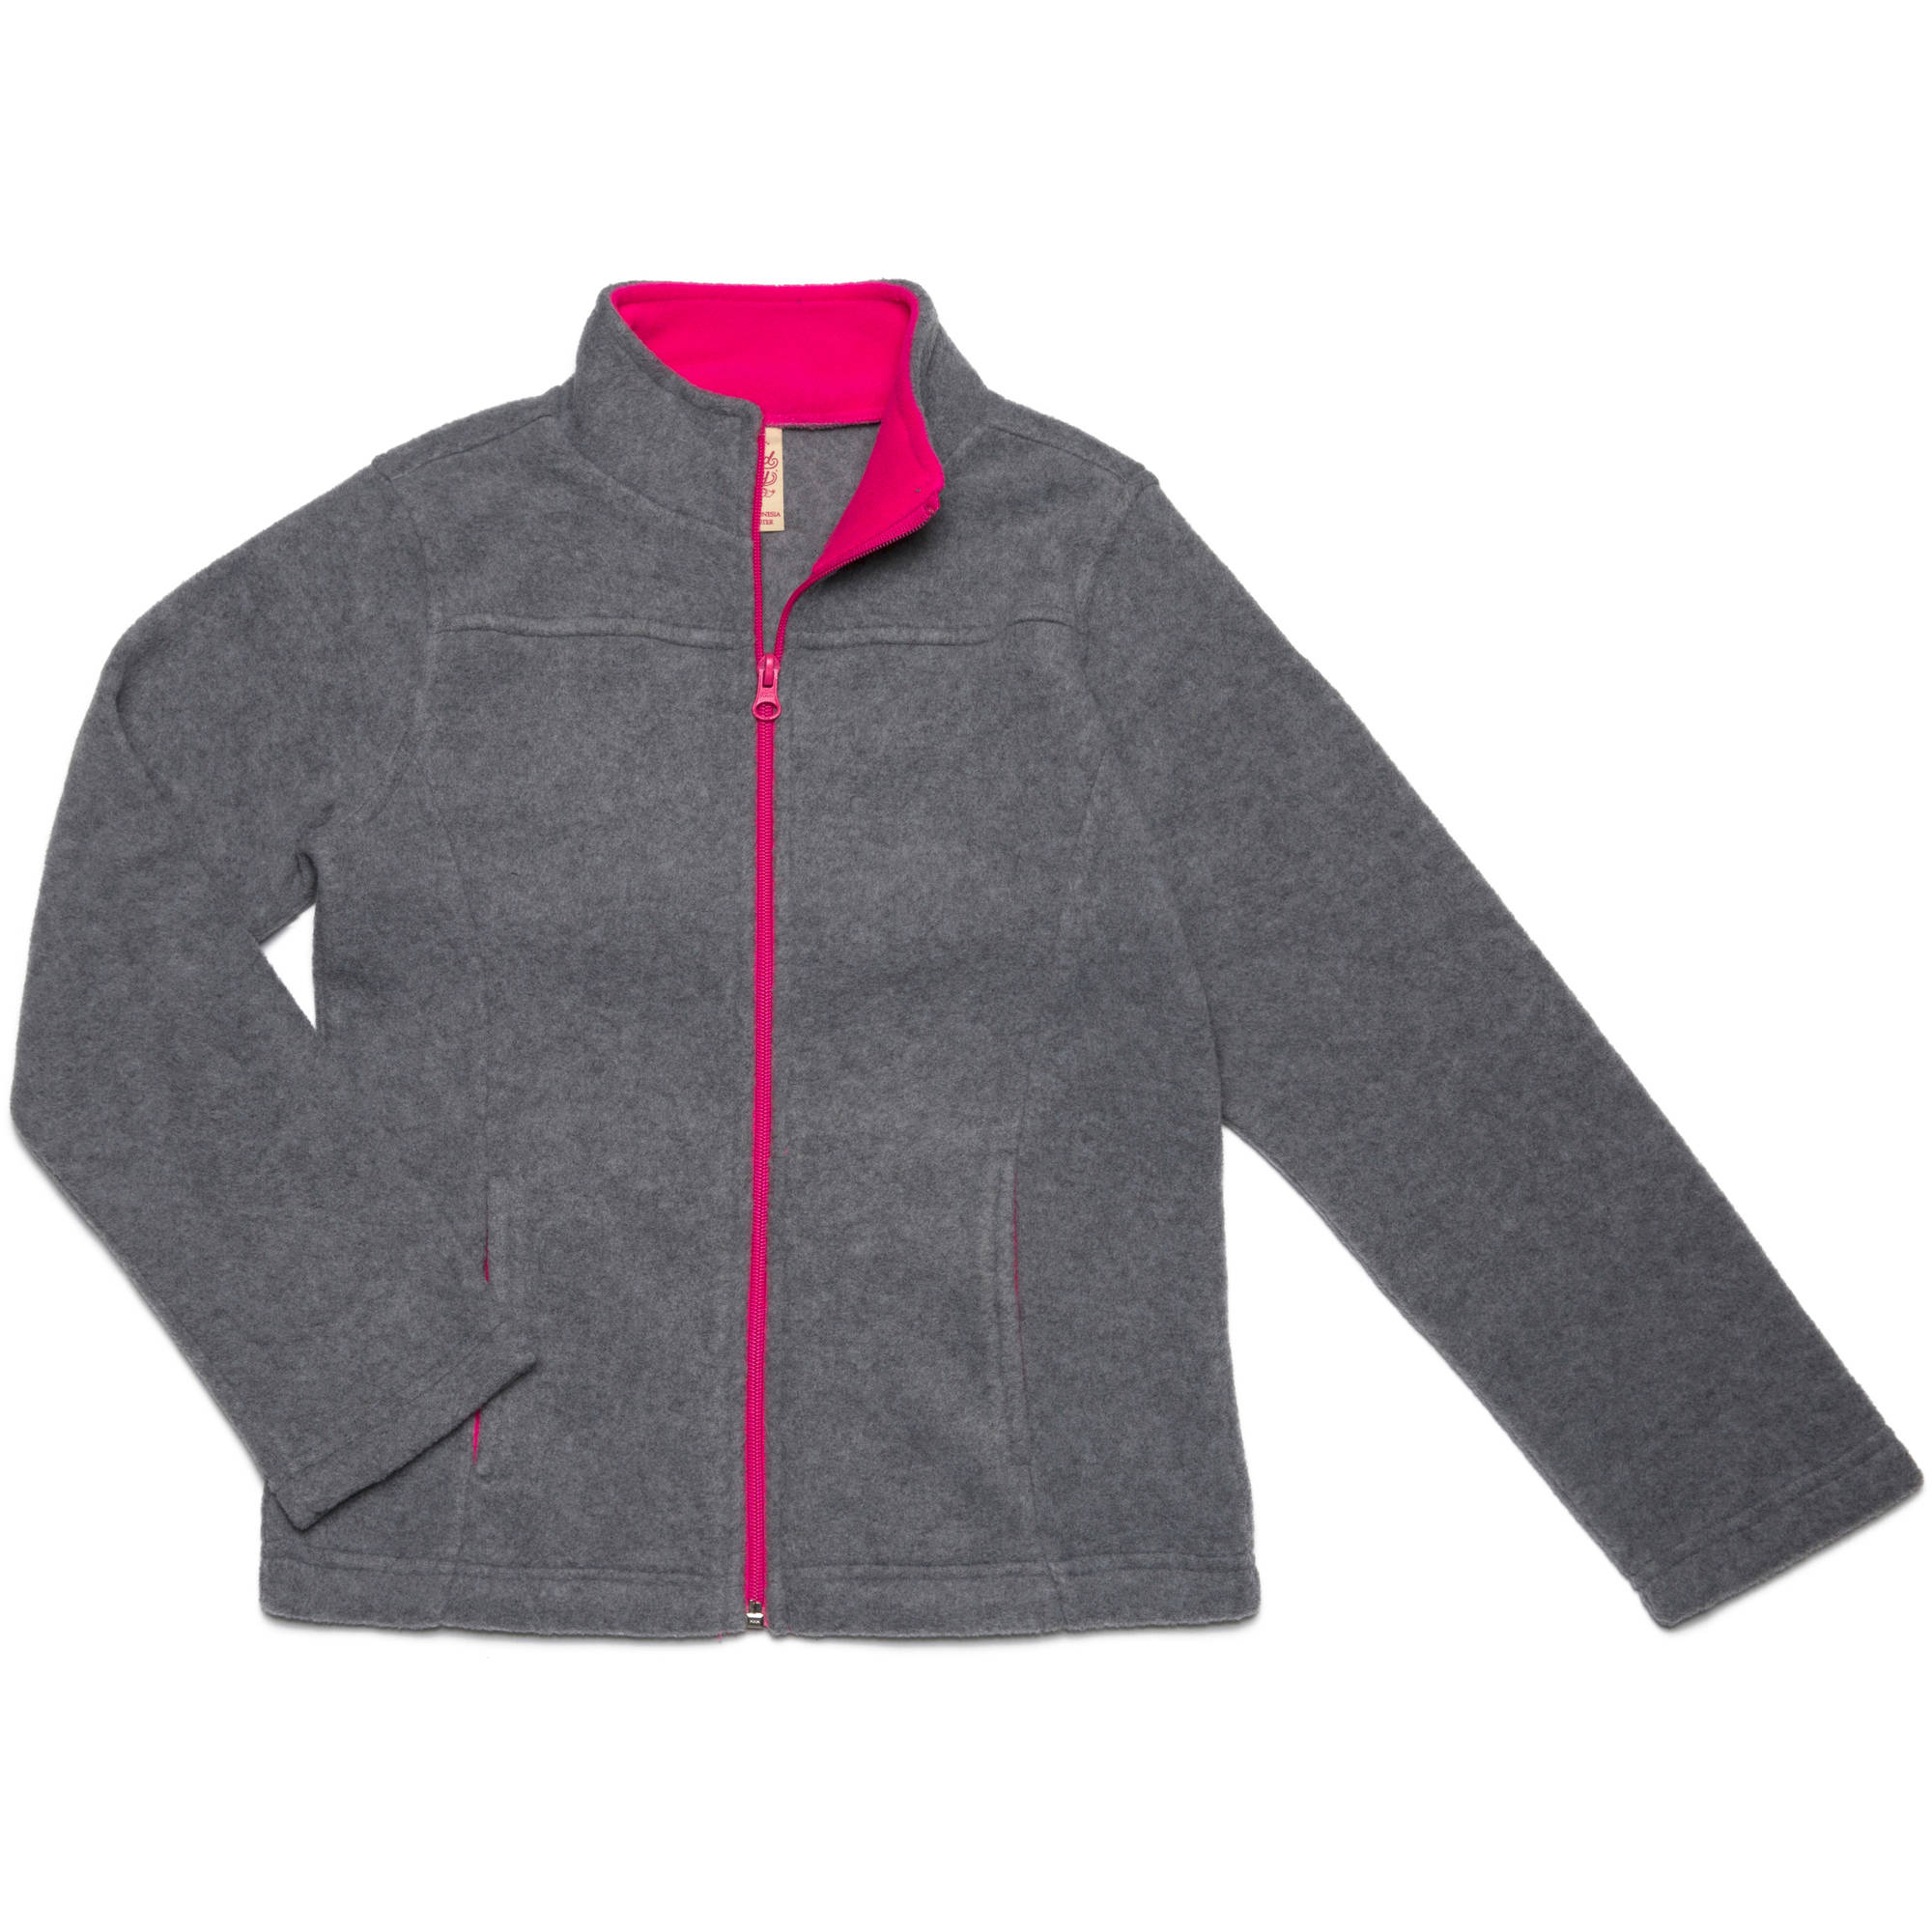 Faded Glory Girls' Micro Fleece Jacket